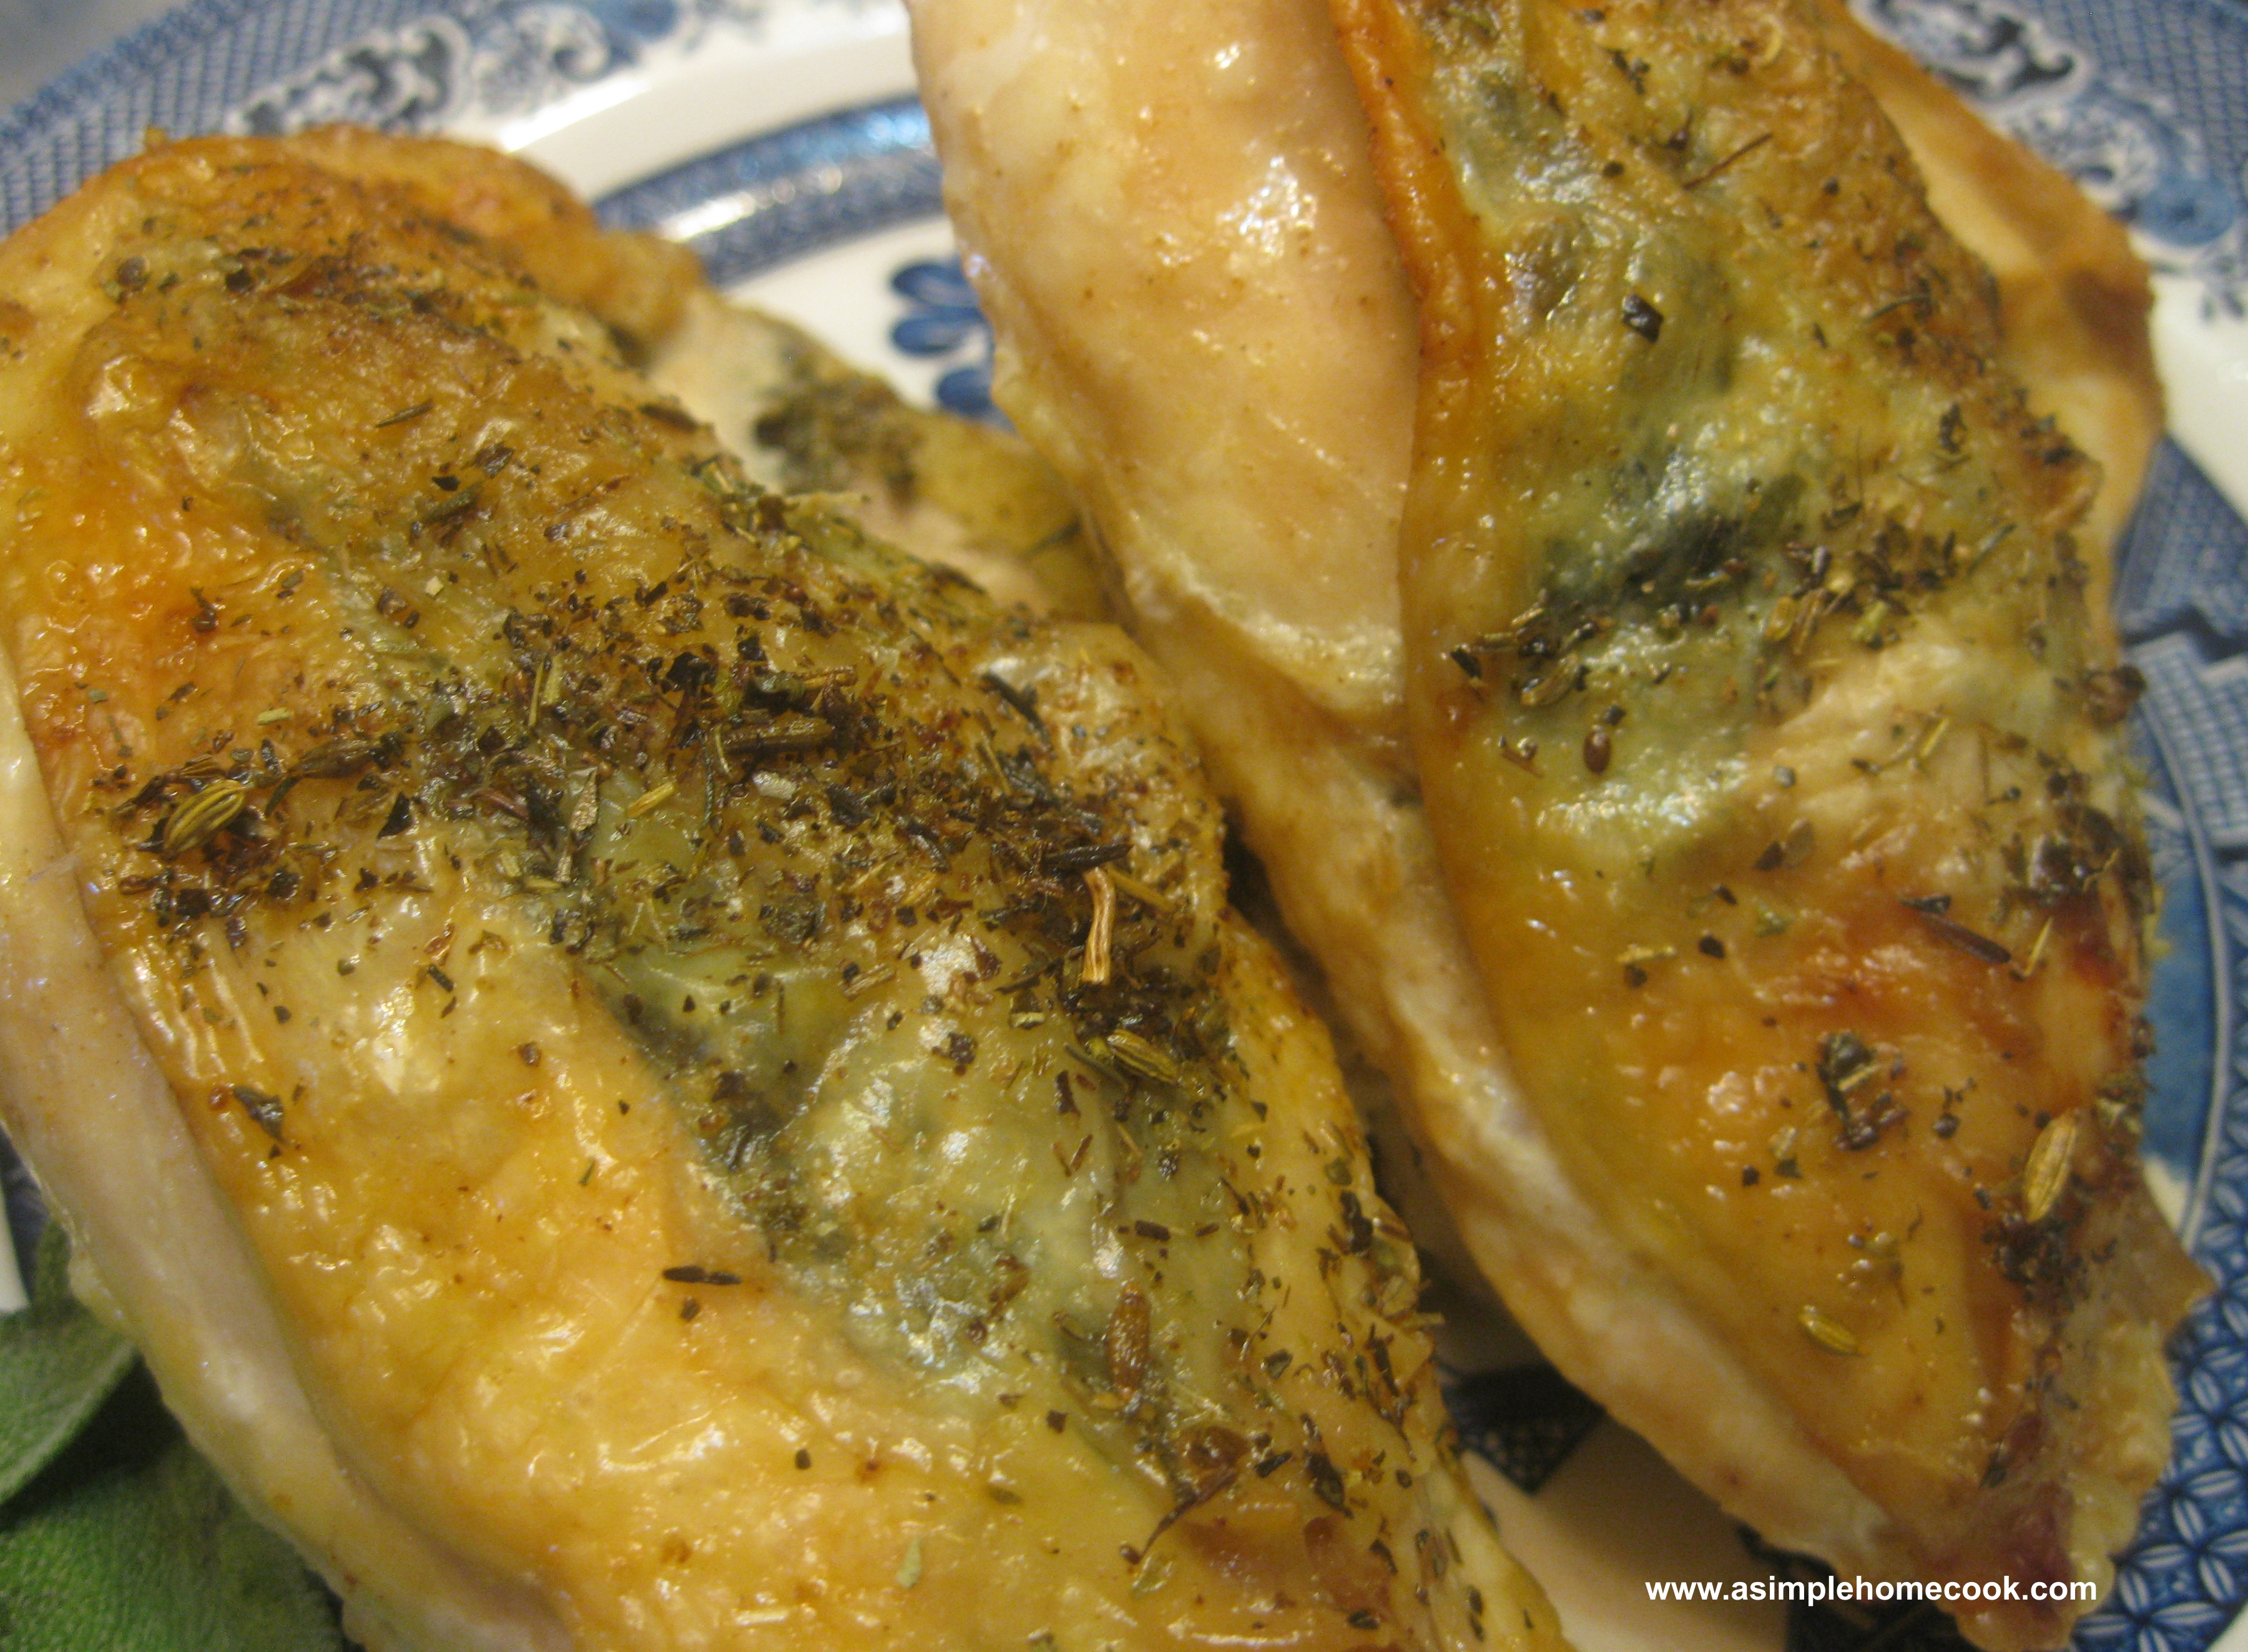 Theme, will Roasting a chicken breast